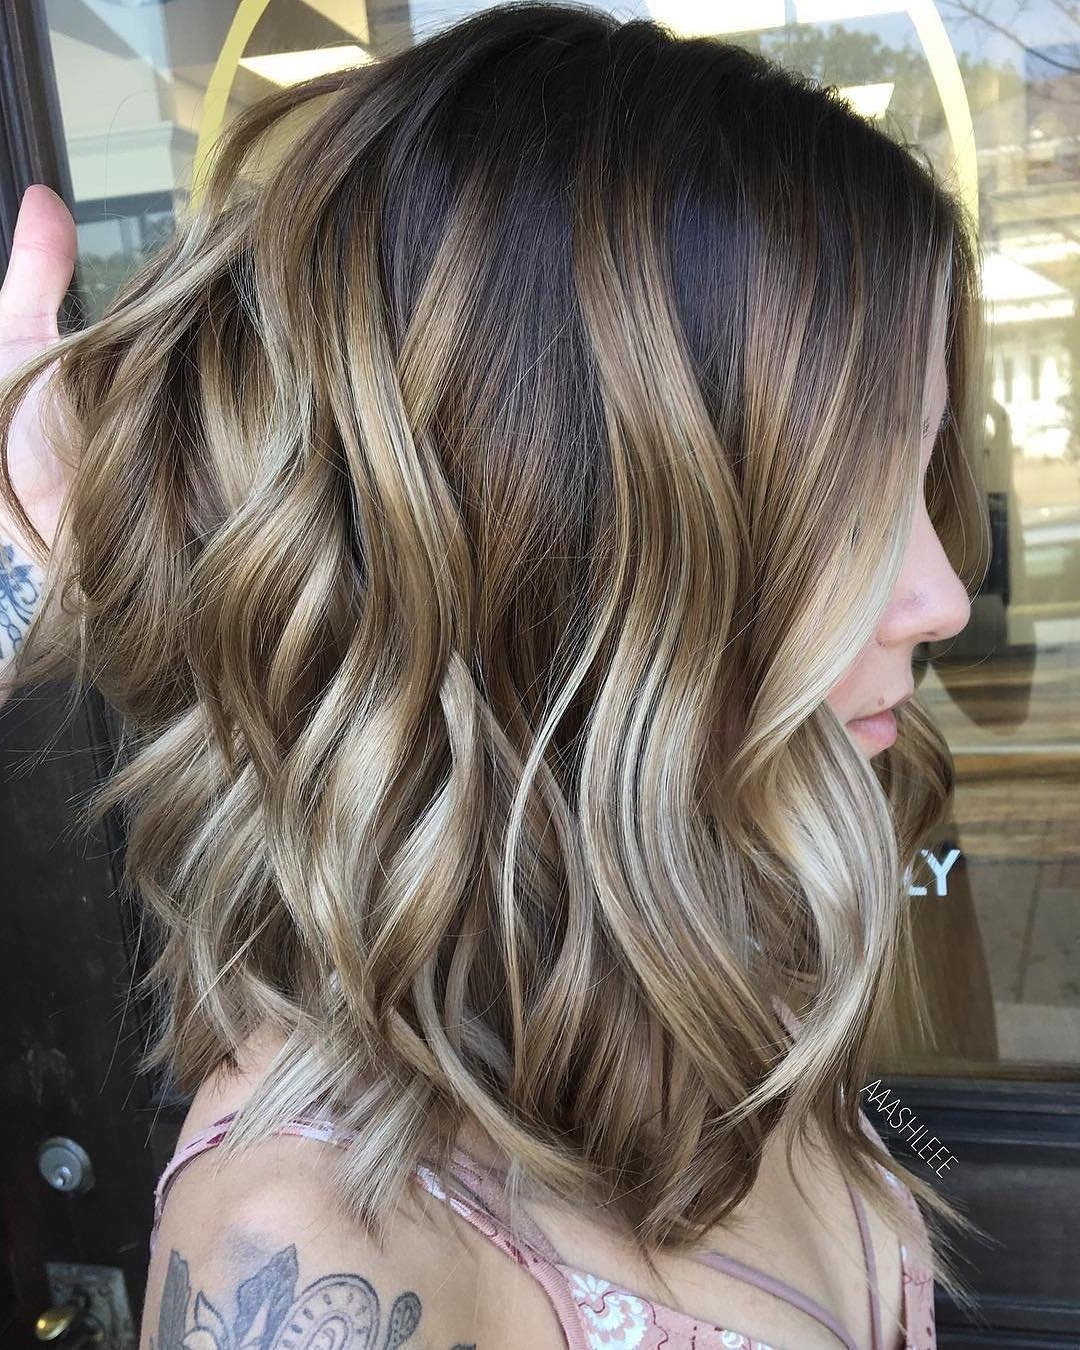 10 Ombre Balayage Hairstyles For Medium Length Hair, Hair Color 2018 With Regard To Most Recently Released Gently Angled Waves Blonde Hairstyles (View 4 of 20)